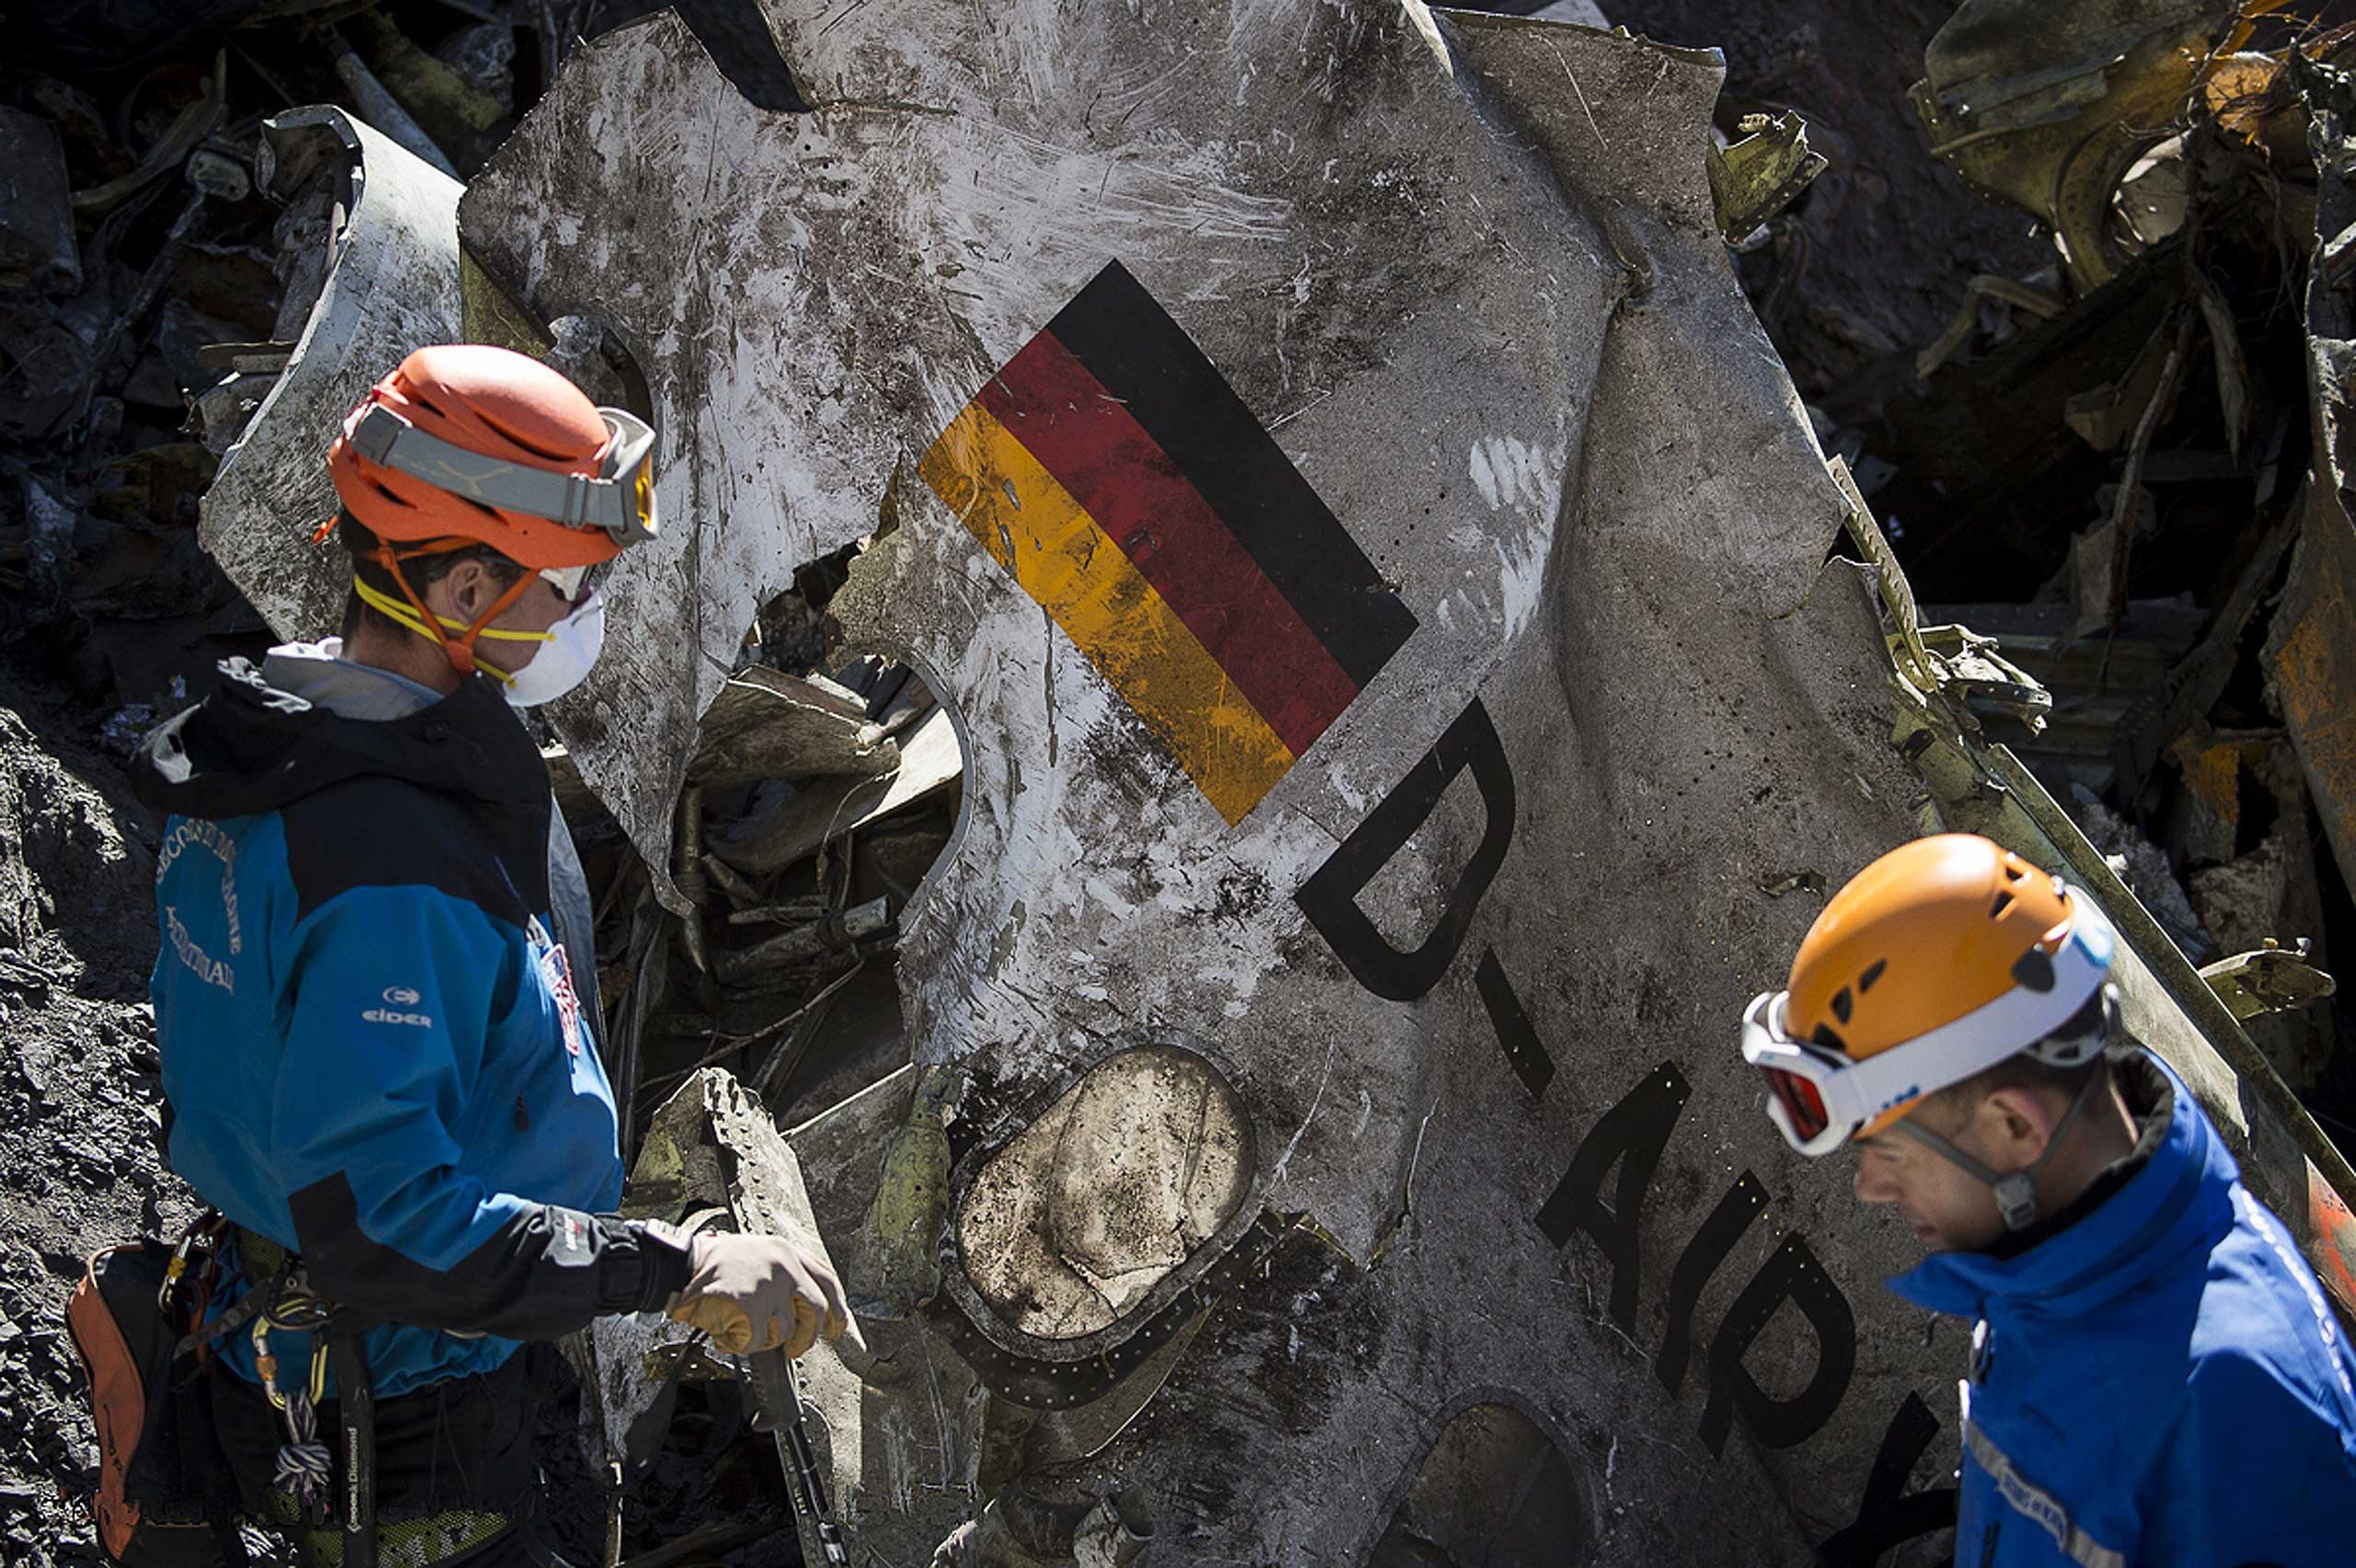 Gendarmes and rescuers from the Gendarmerie High-Mountain Rescue Group working at the crash site of the Germanwings Airbus A320 near Le Vernet, French Alps, on March 31, 2015.